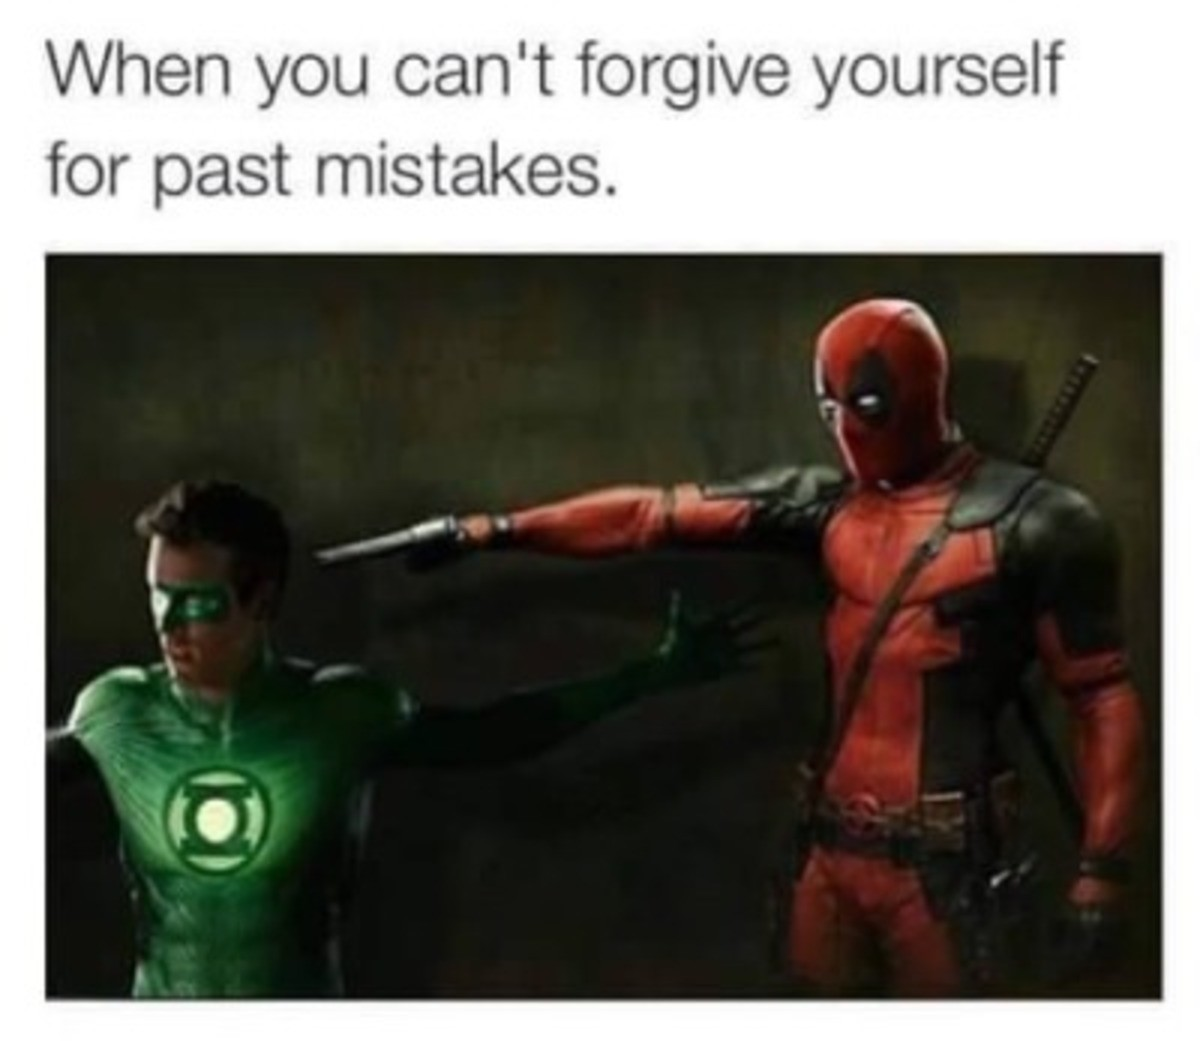 """My steaks were made. . When you can' t i"""" yourself for mistakes.. Replace Green Lantern with Deadpool from X-Men Origins: Wolverine, and it's much more accurate."""